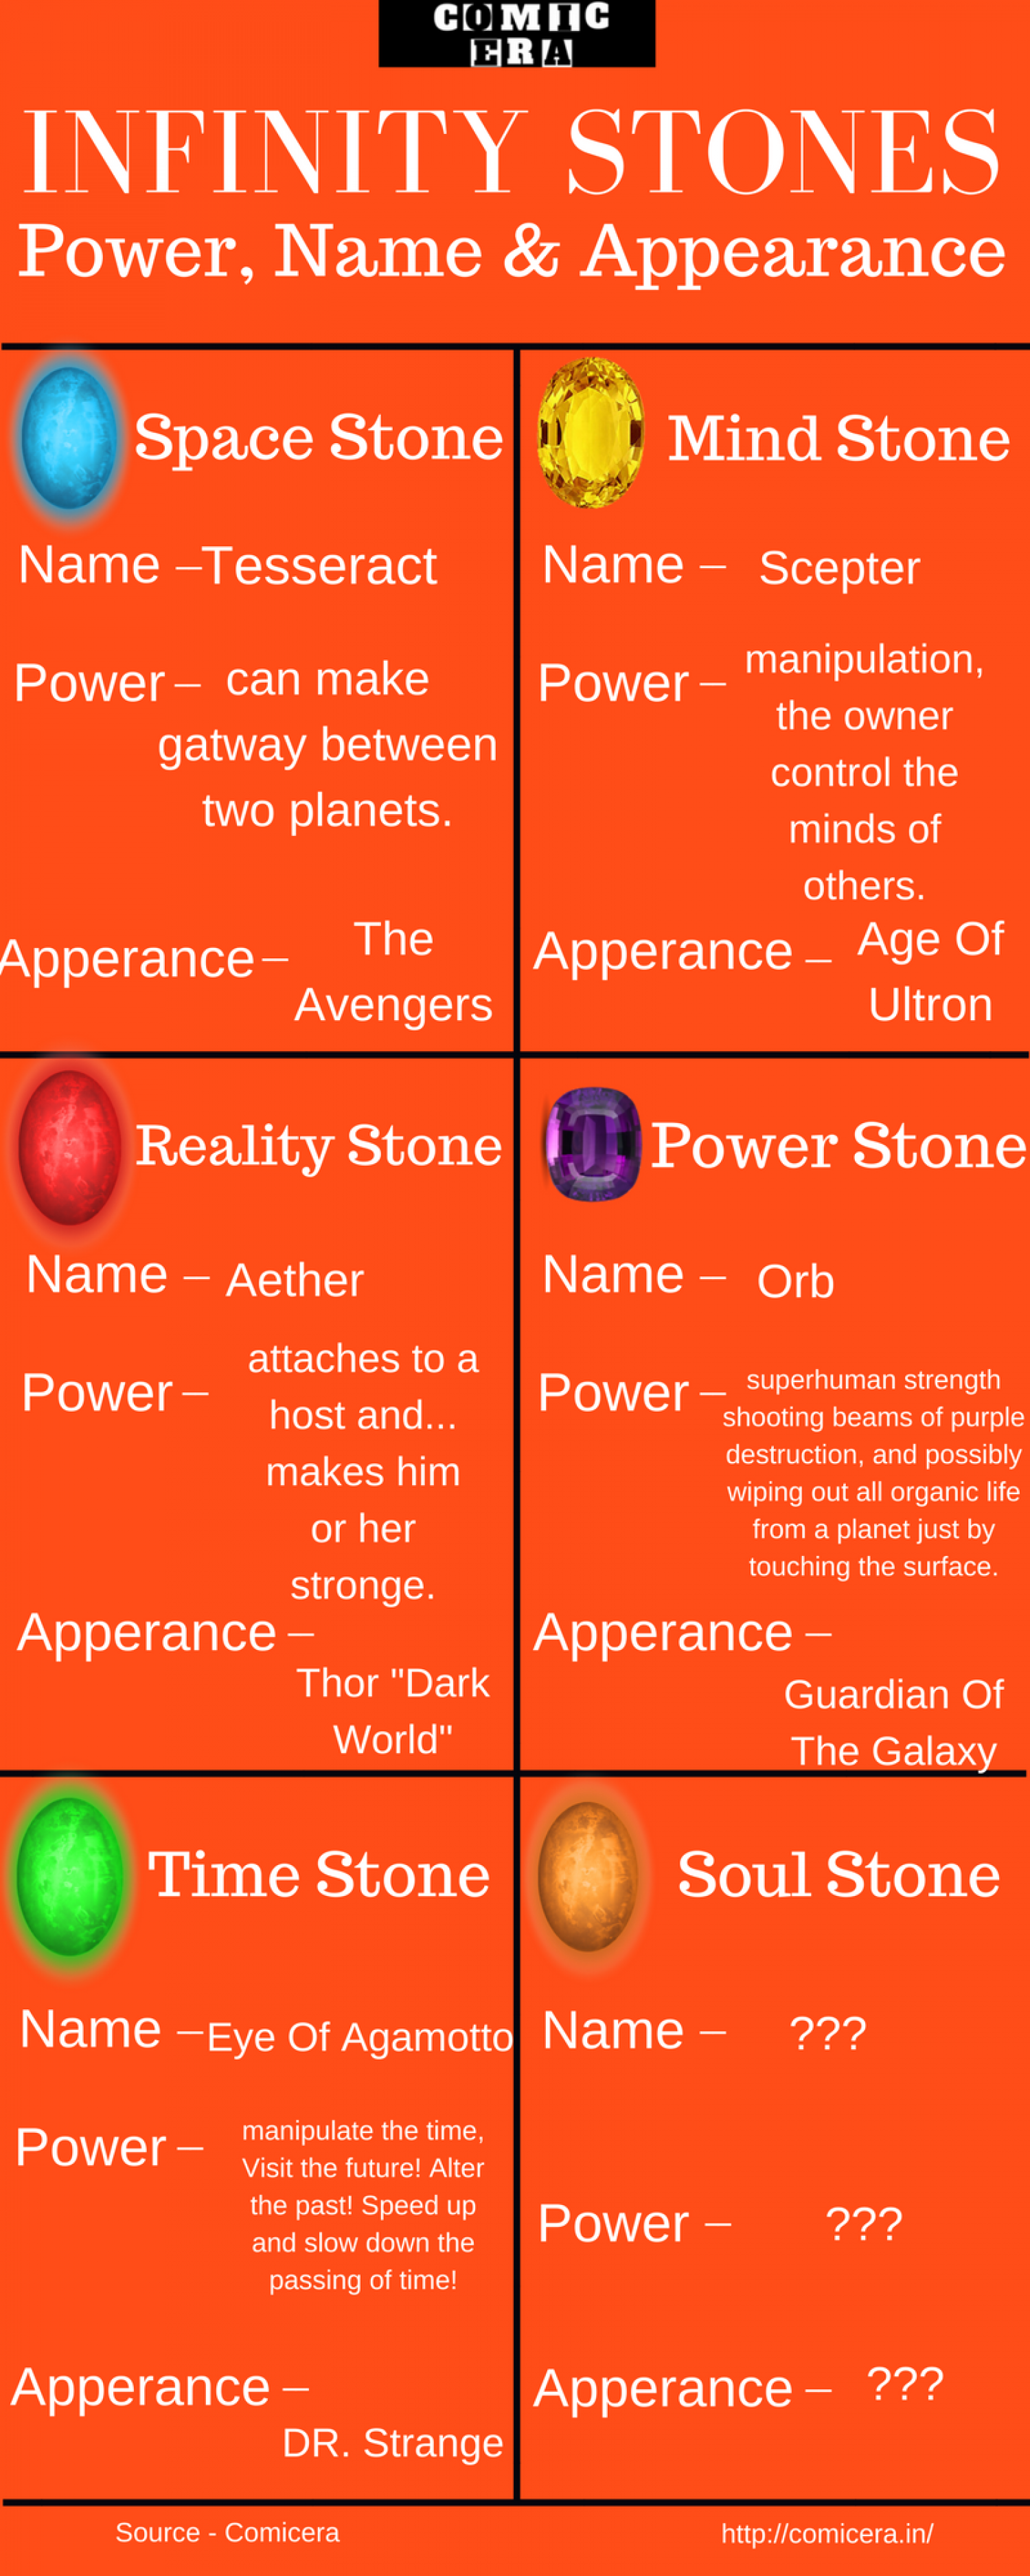 Marvel Super Hero Forums - Infinity Stone Story Infographic